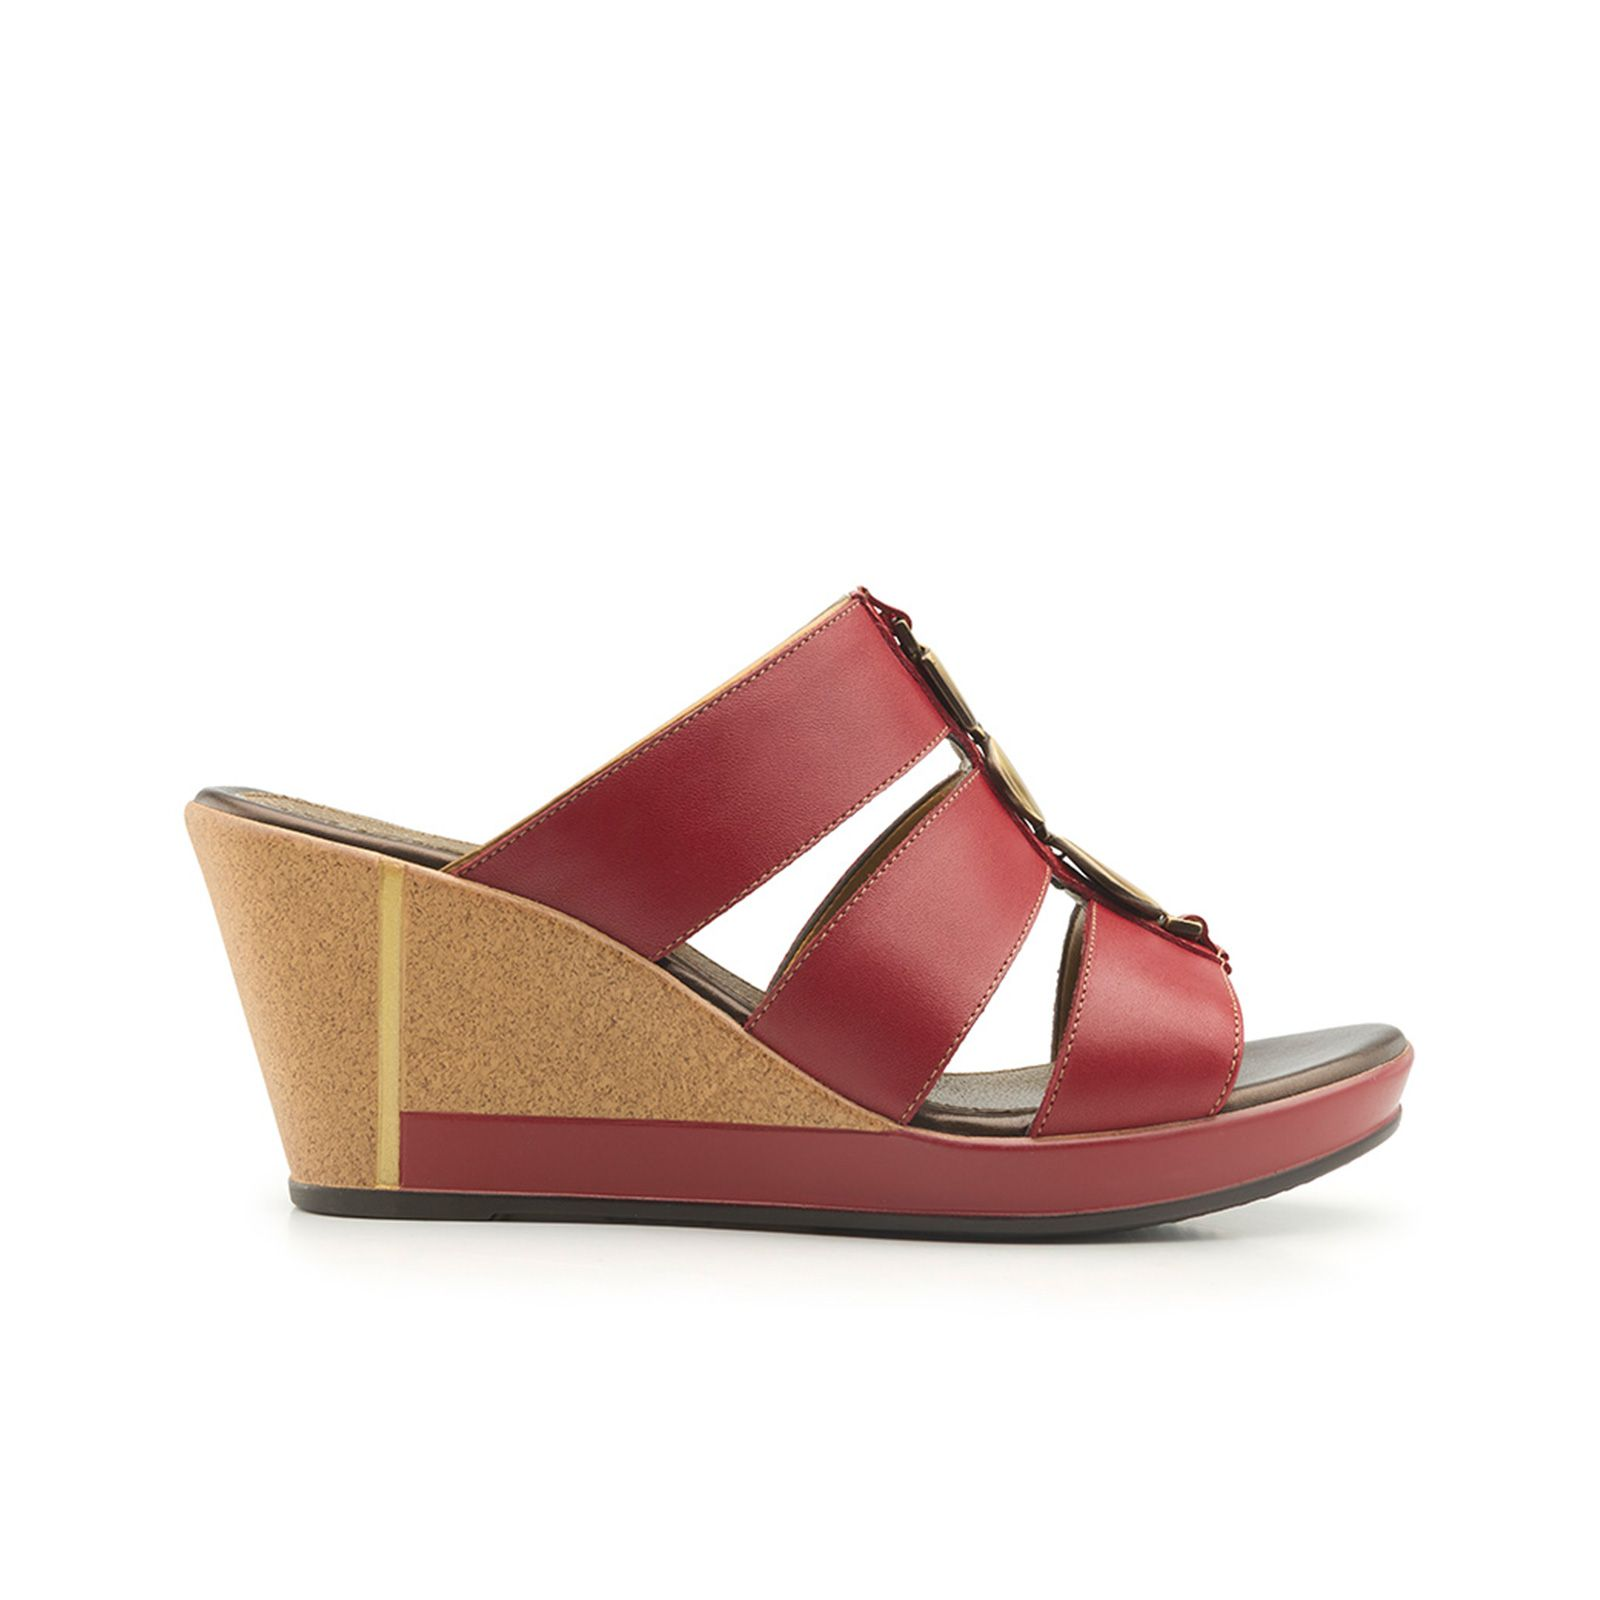 Flexi - Sandalias wedge México